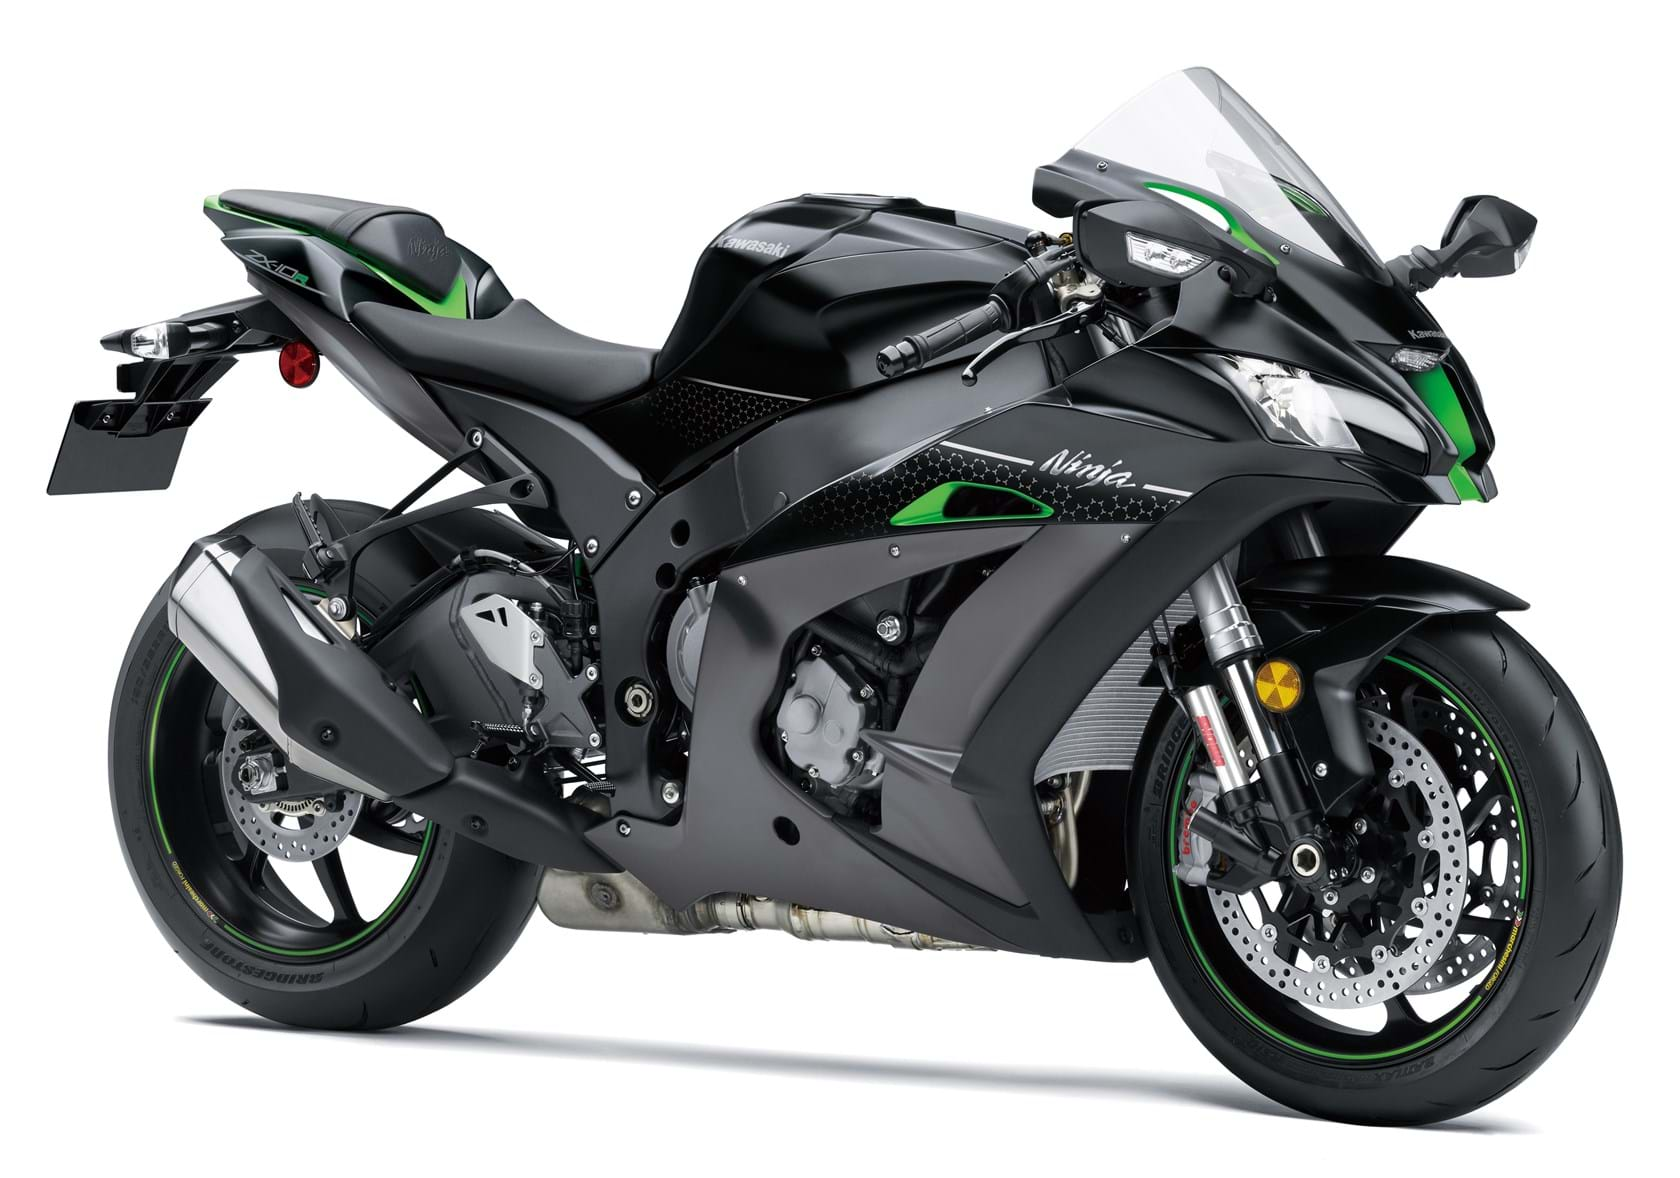 For Sale Kawasaki Ninja Zx 10r Se The Bike Market